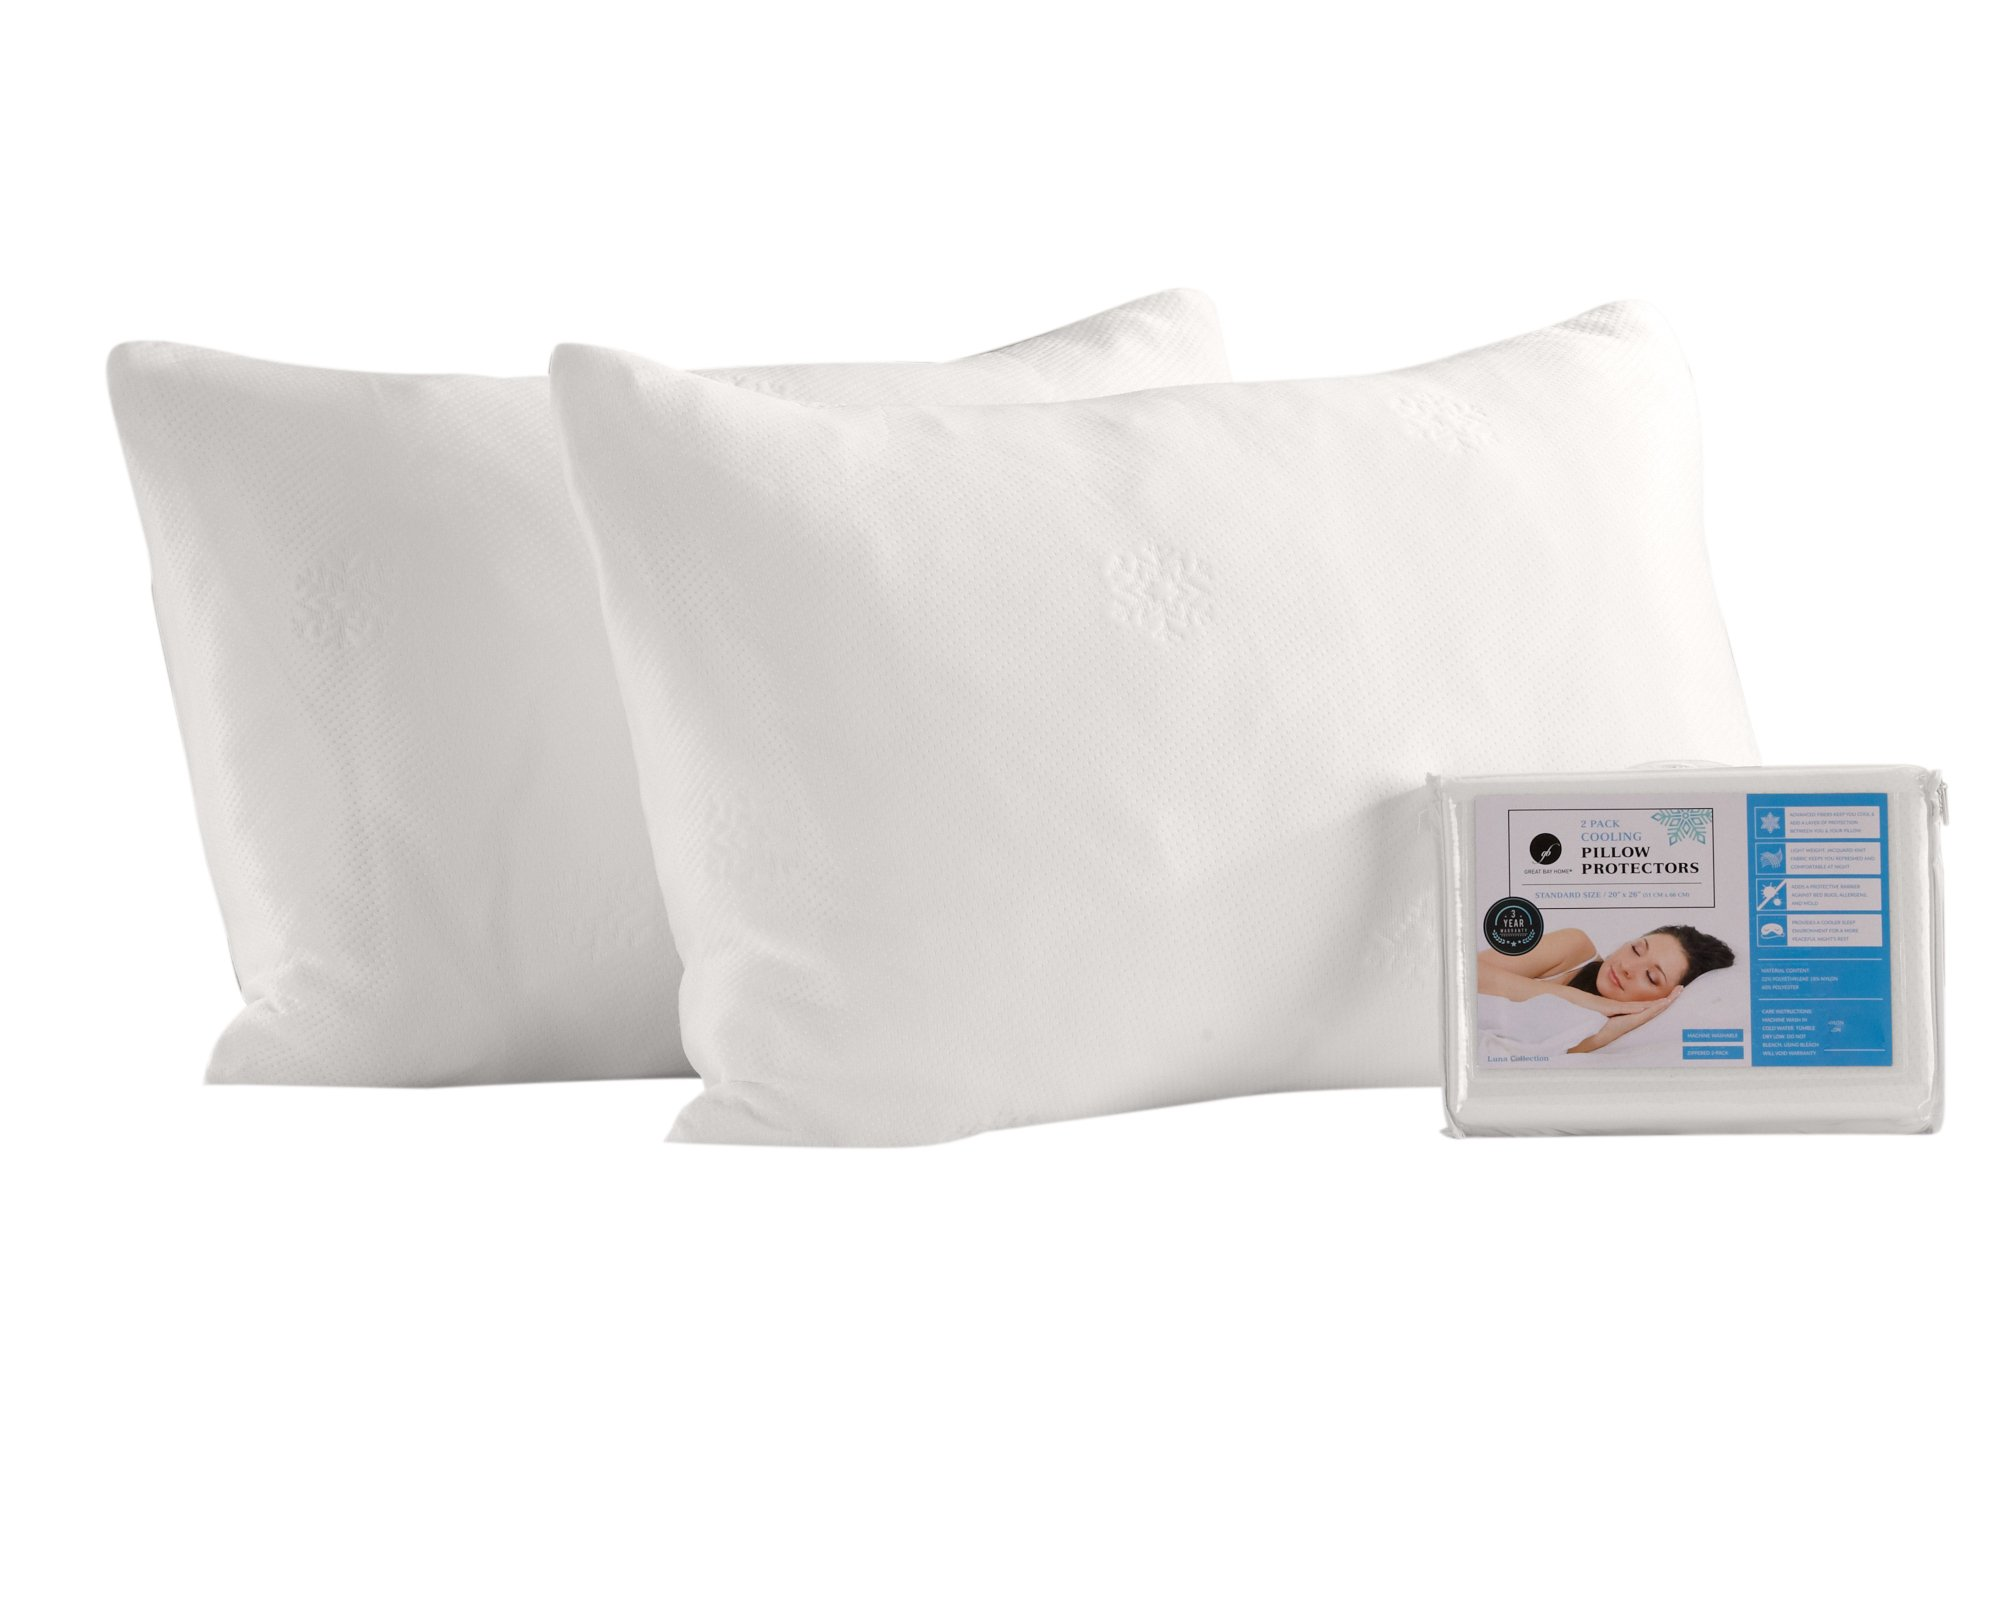 4 Pack Cooling Pillow Protectors. Breathable for Night Sweats. Durable, Machine-Washable, and Zippered. (Jumbo/Queen)